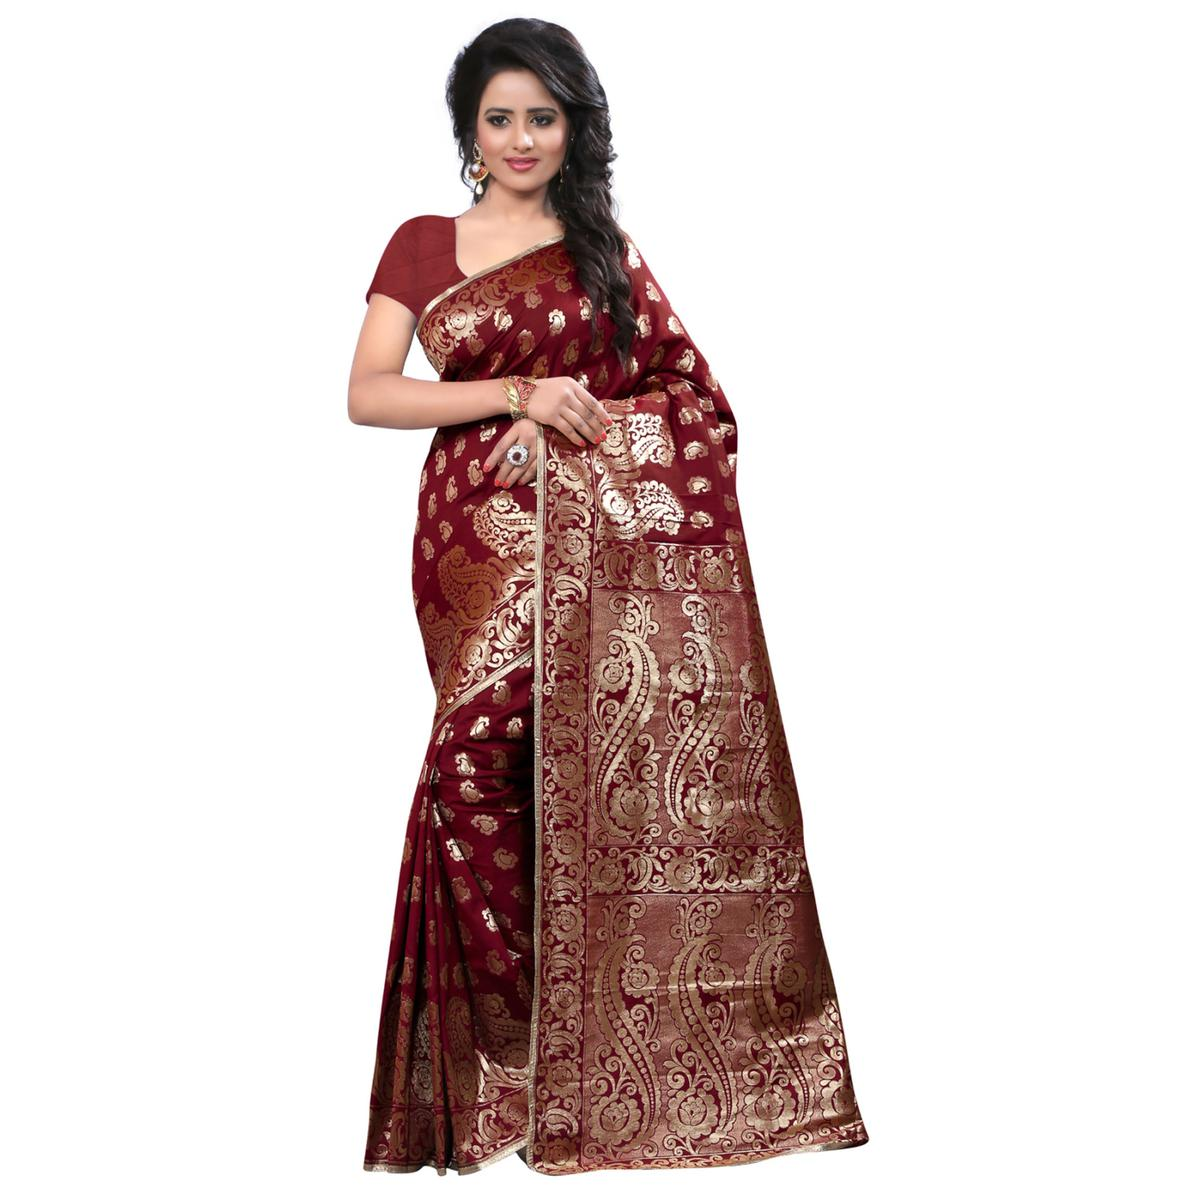 Gorgeous Maroon Colored Festive Wear Banarasi Silk Saree